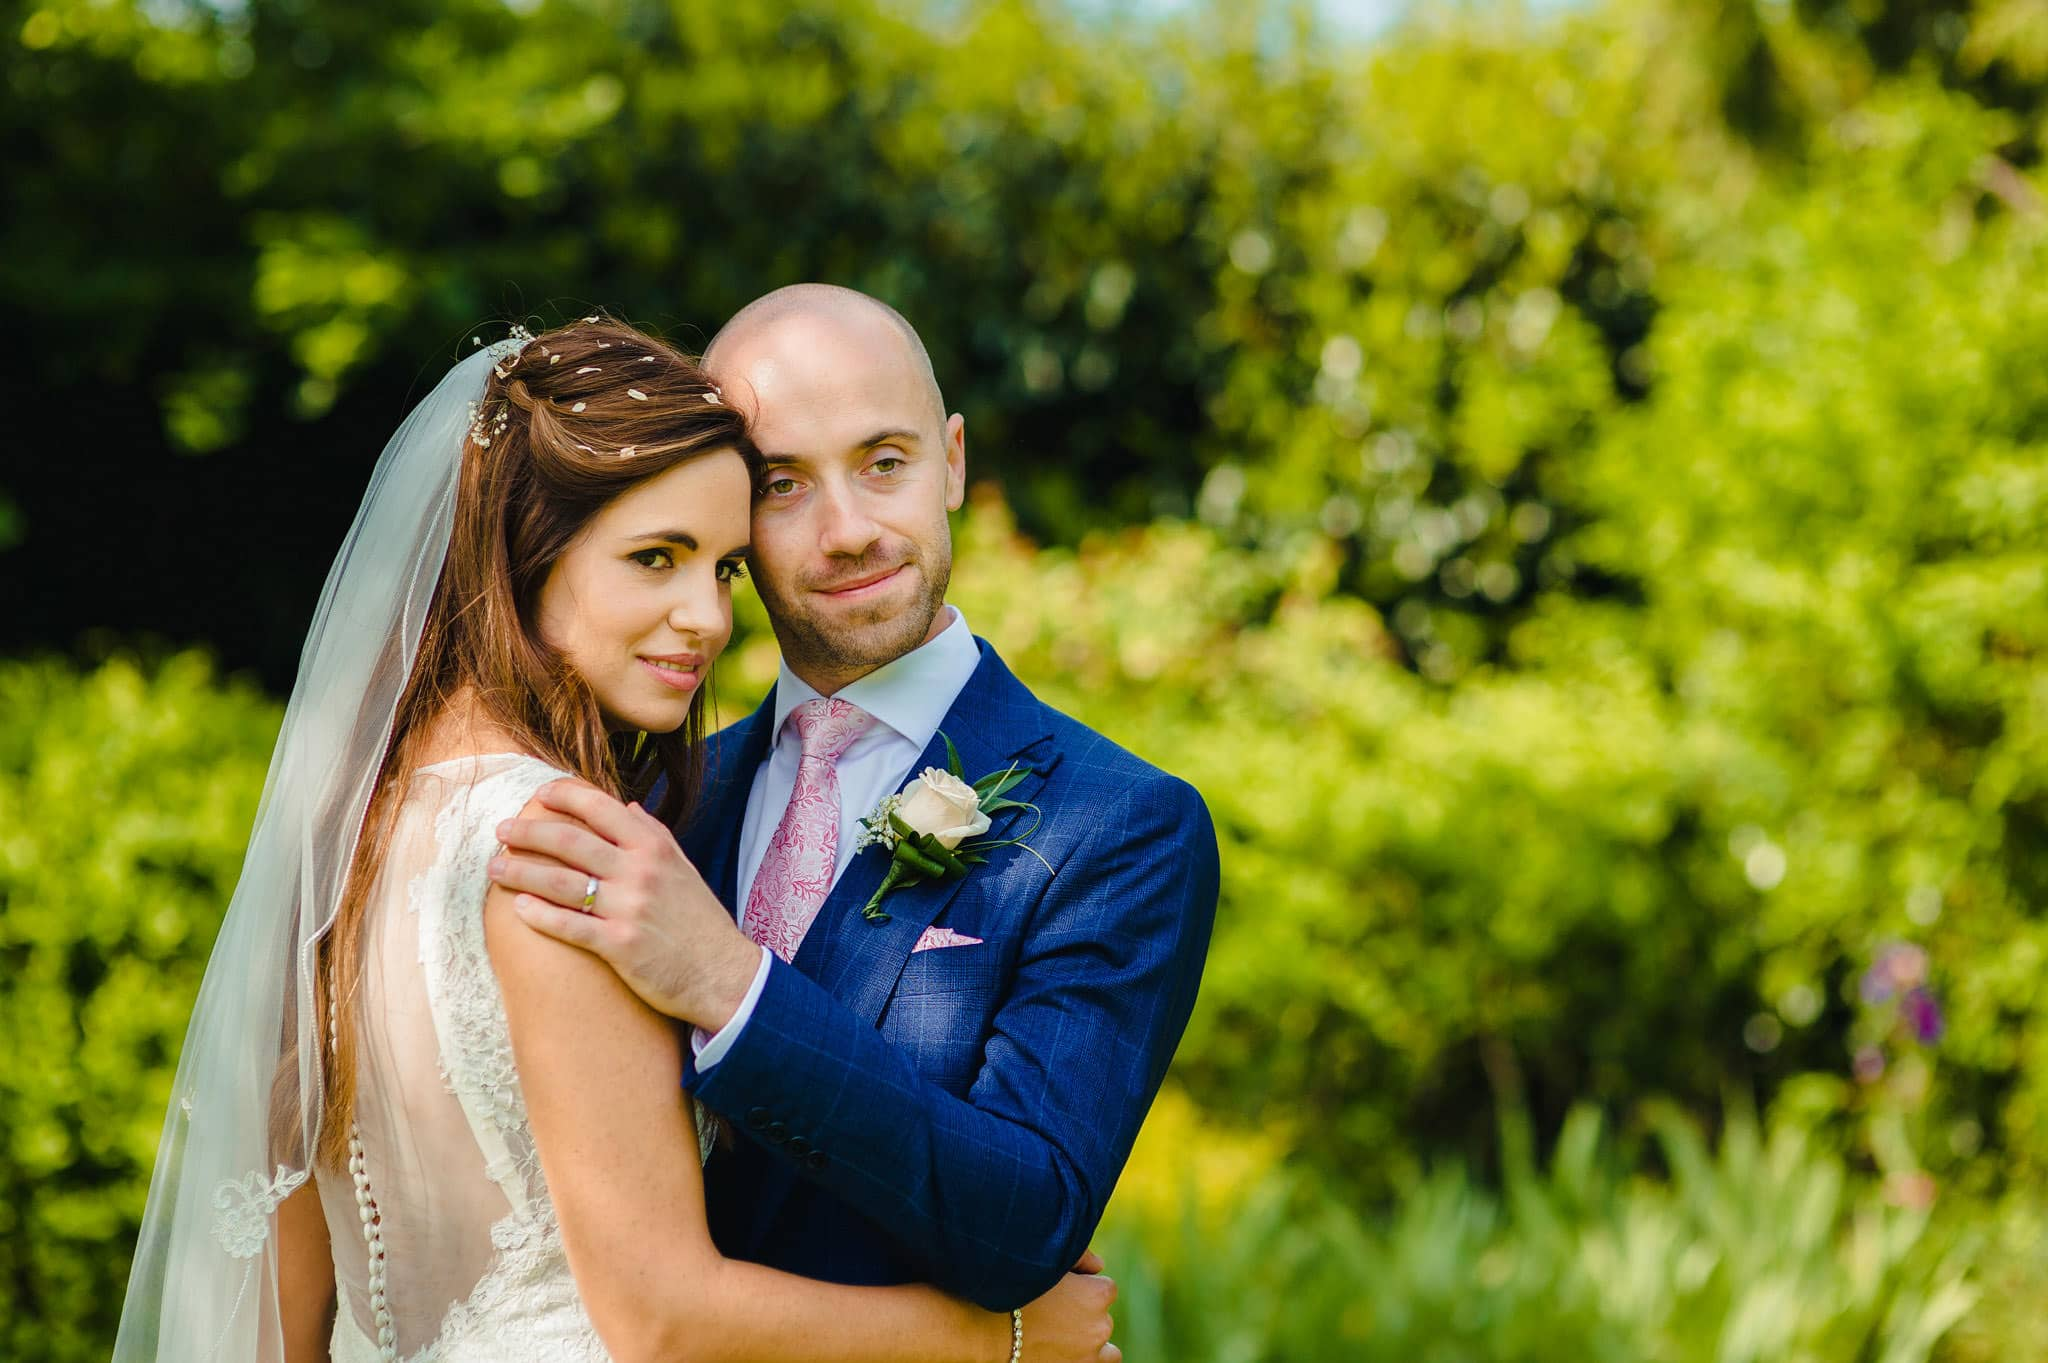 Wedding at Redhouse Barn in Stoke Prior, Worcestershire 113